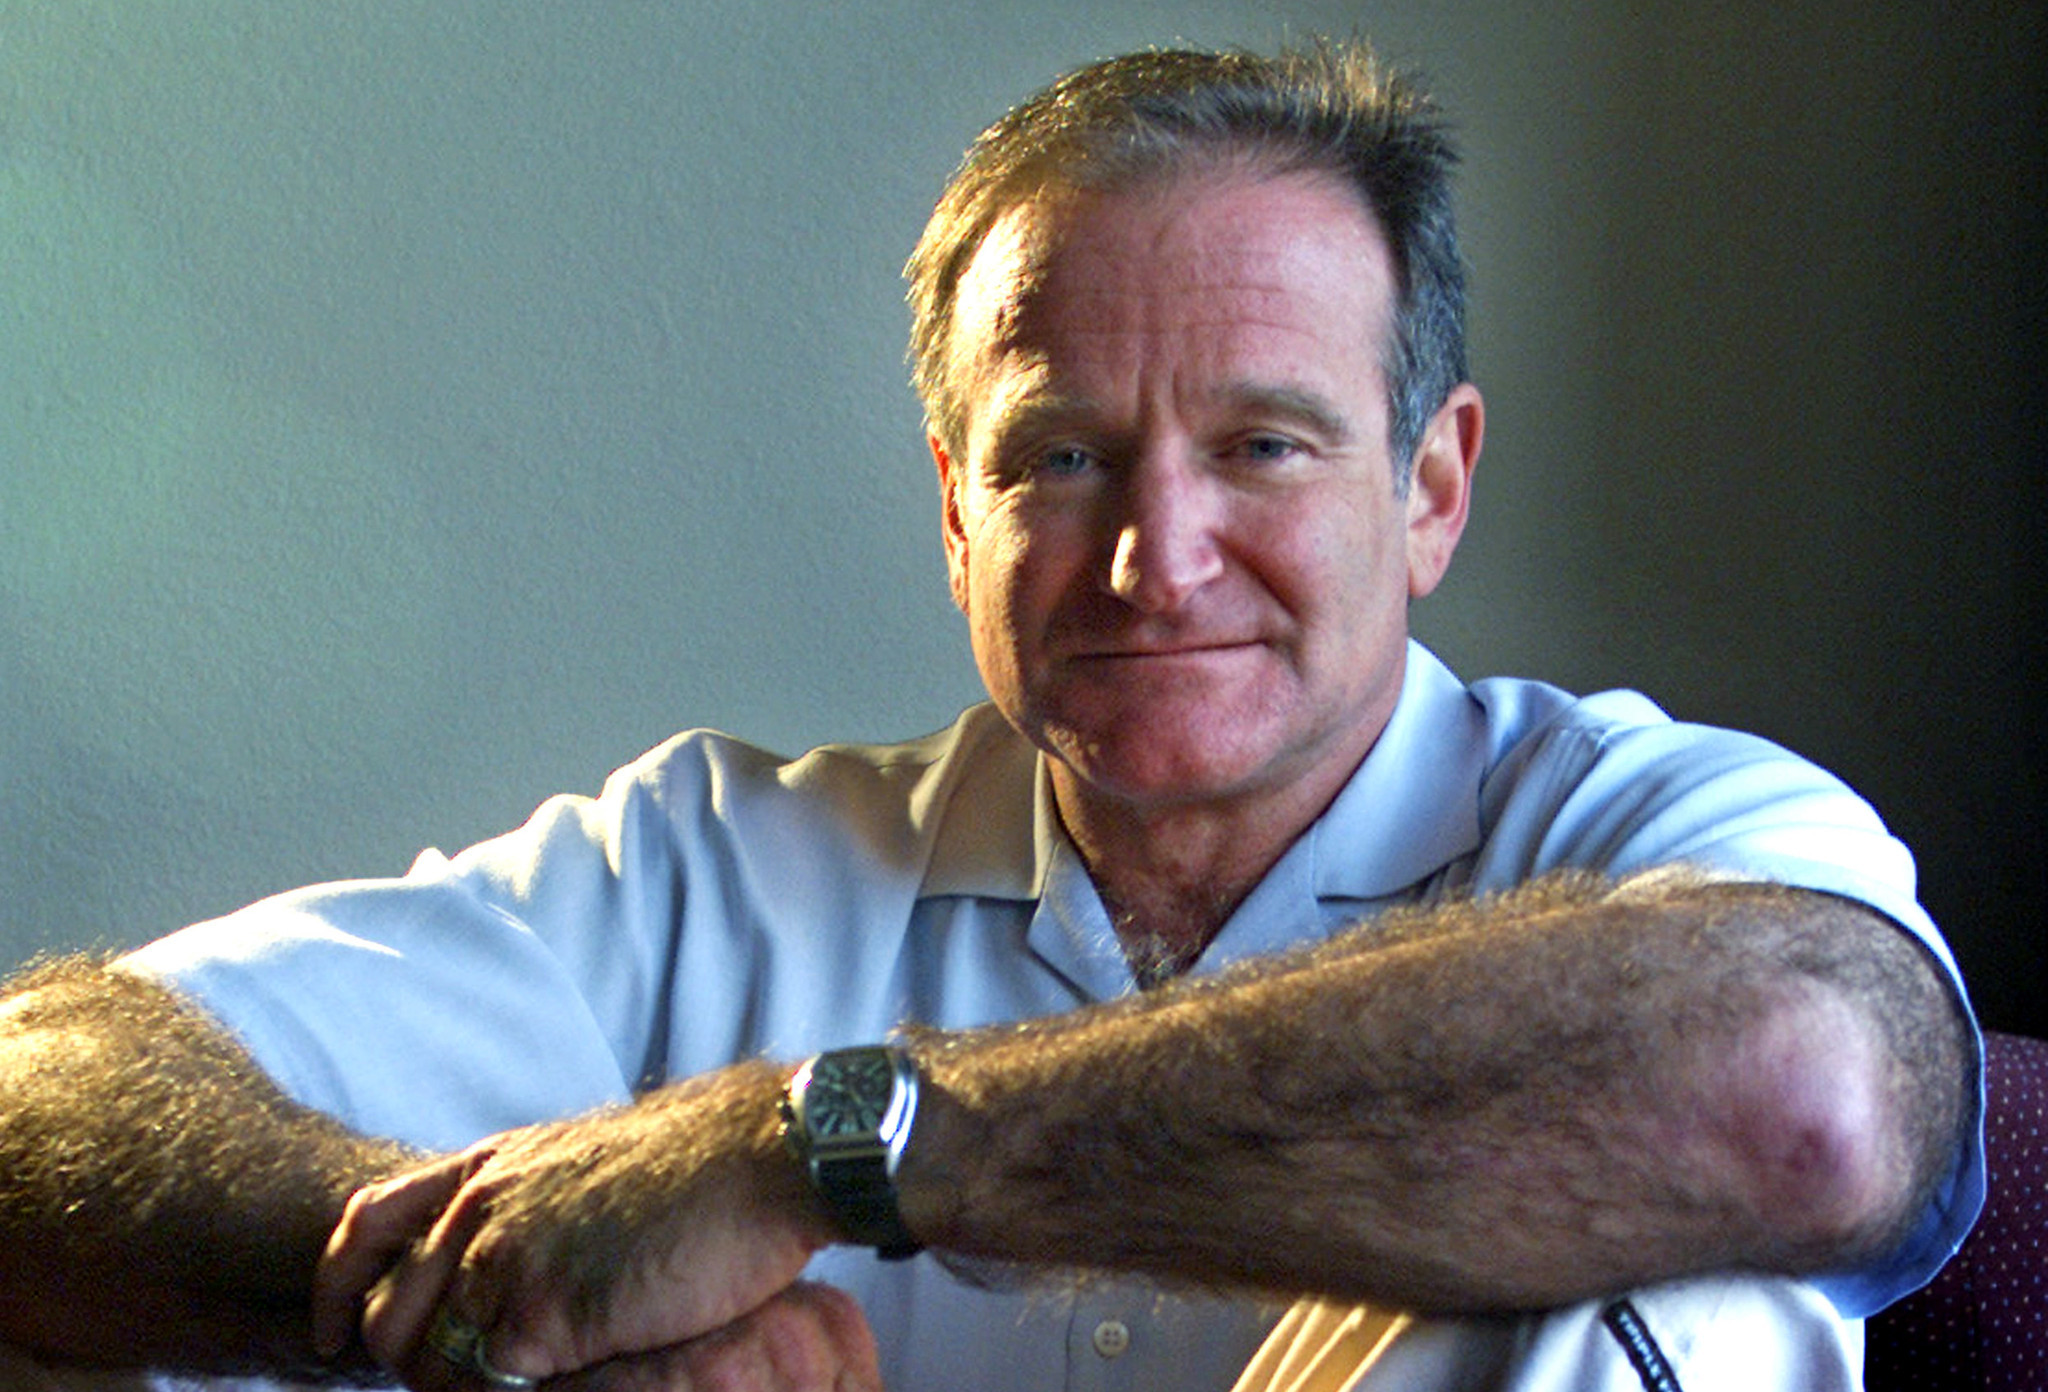 Robin Williams Robin Williams rise no